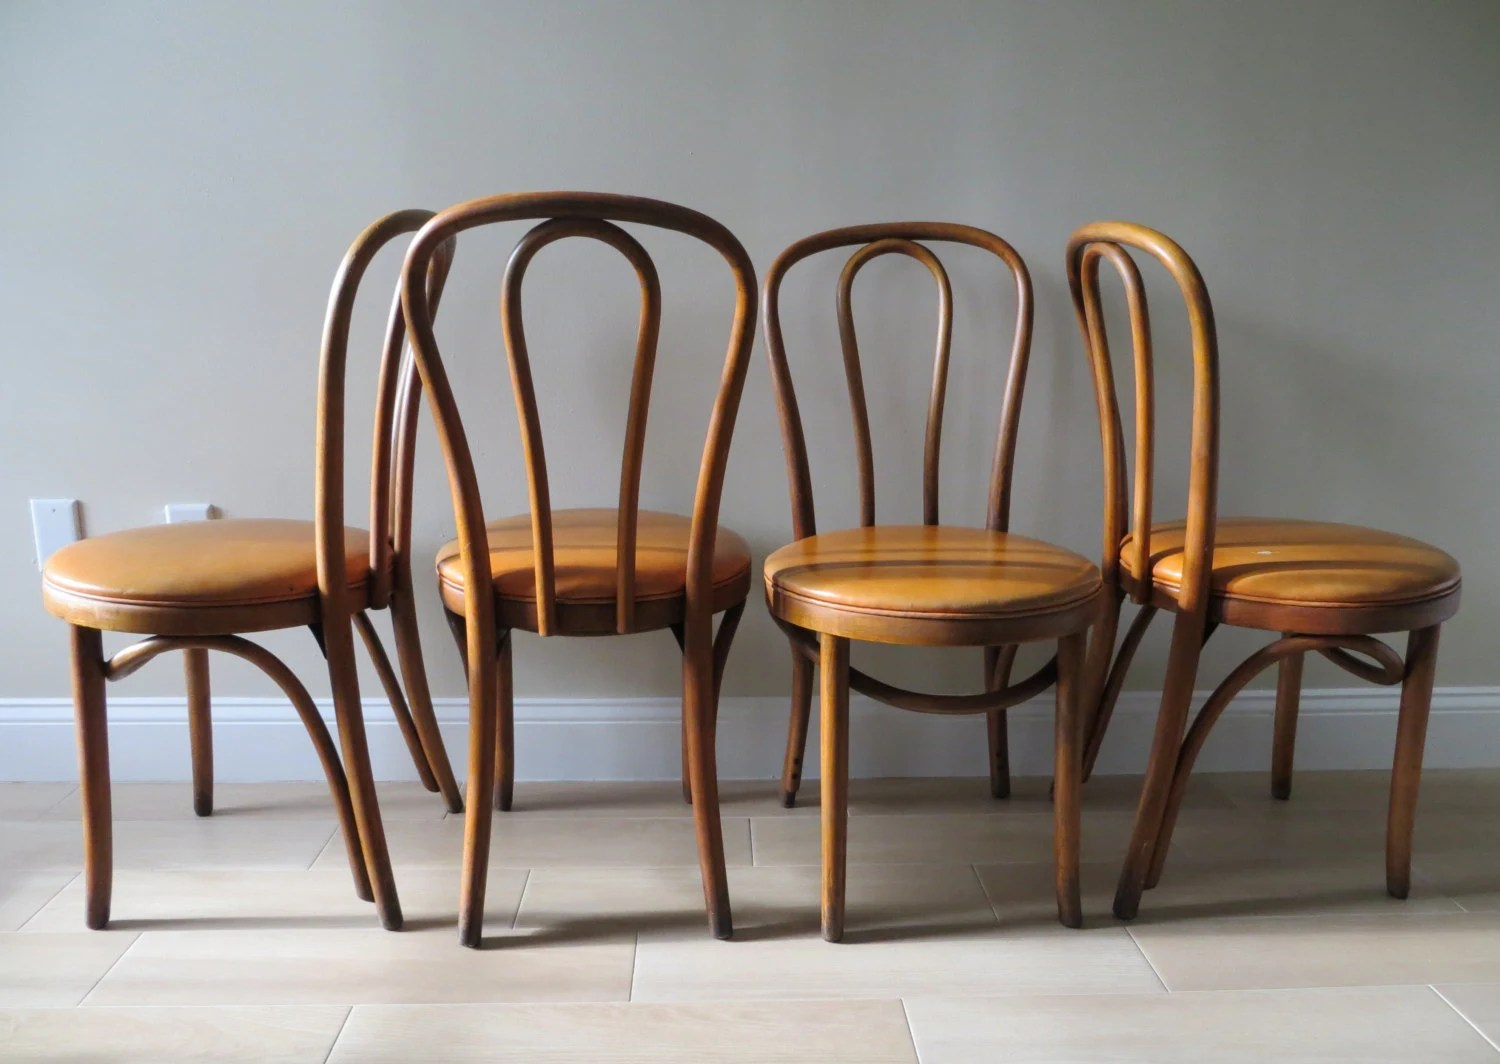 bistro style dining chairs swivel rocker patio chair vintage mid century bentwood thonet cafe